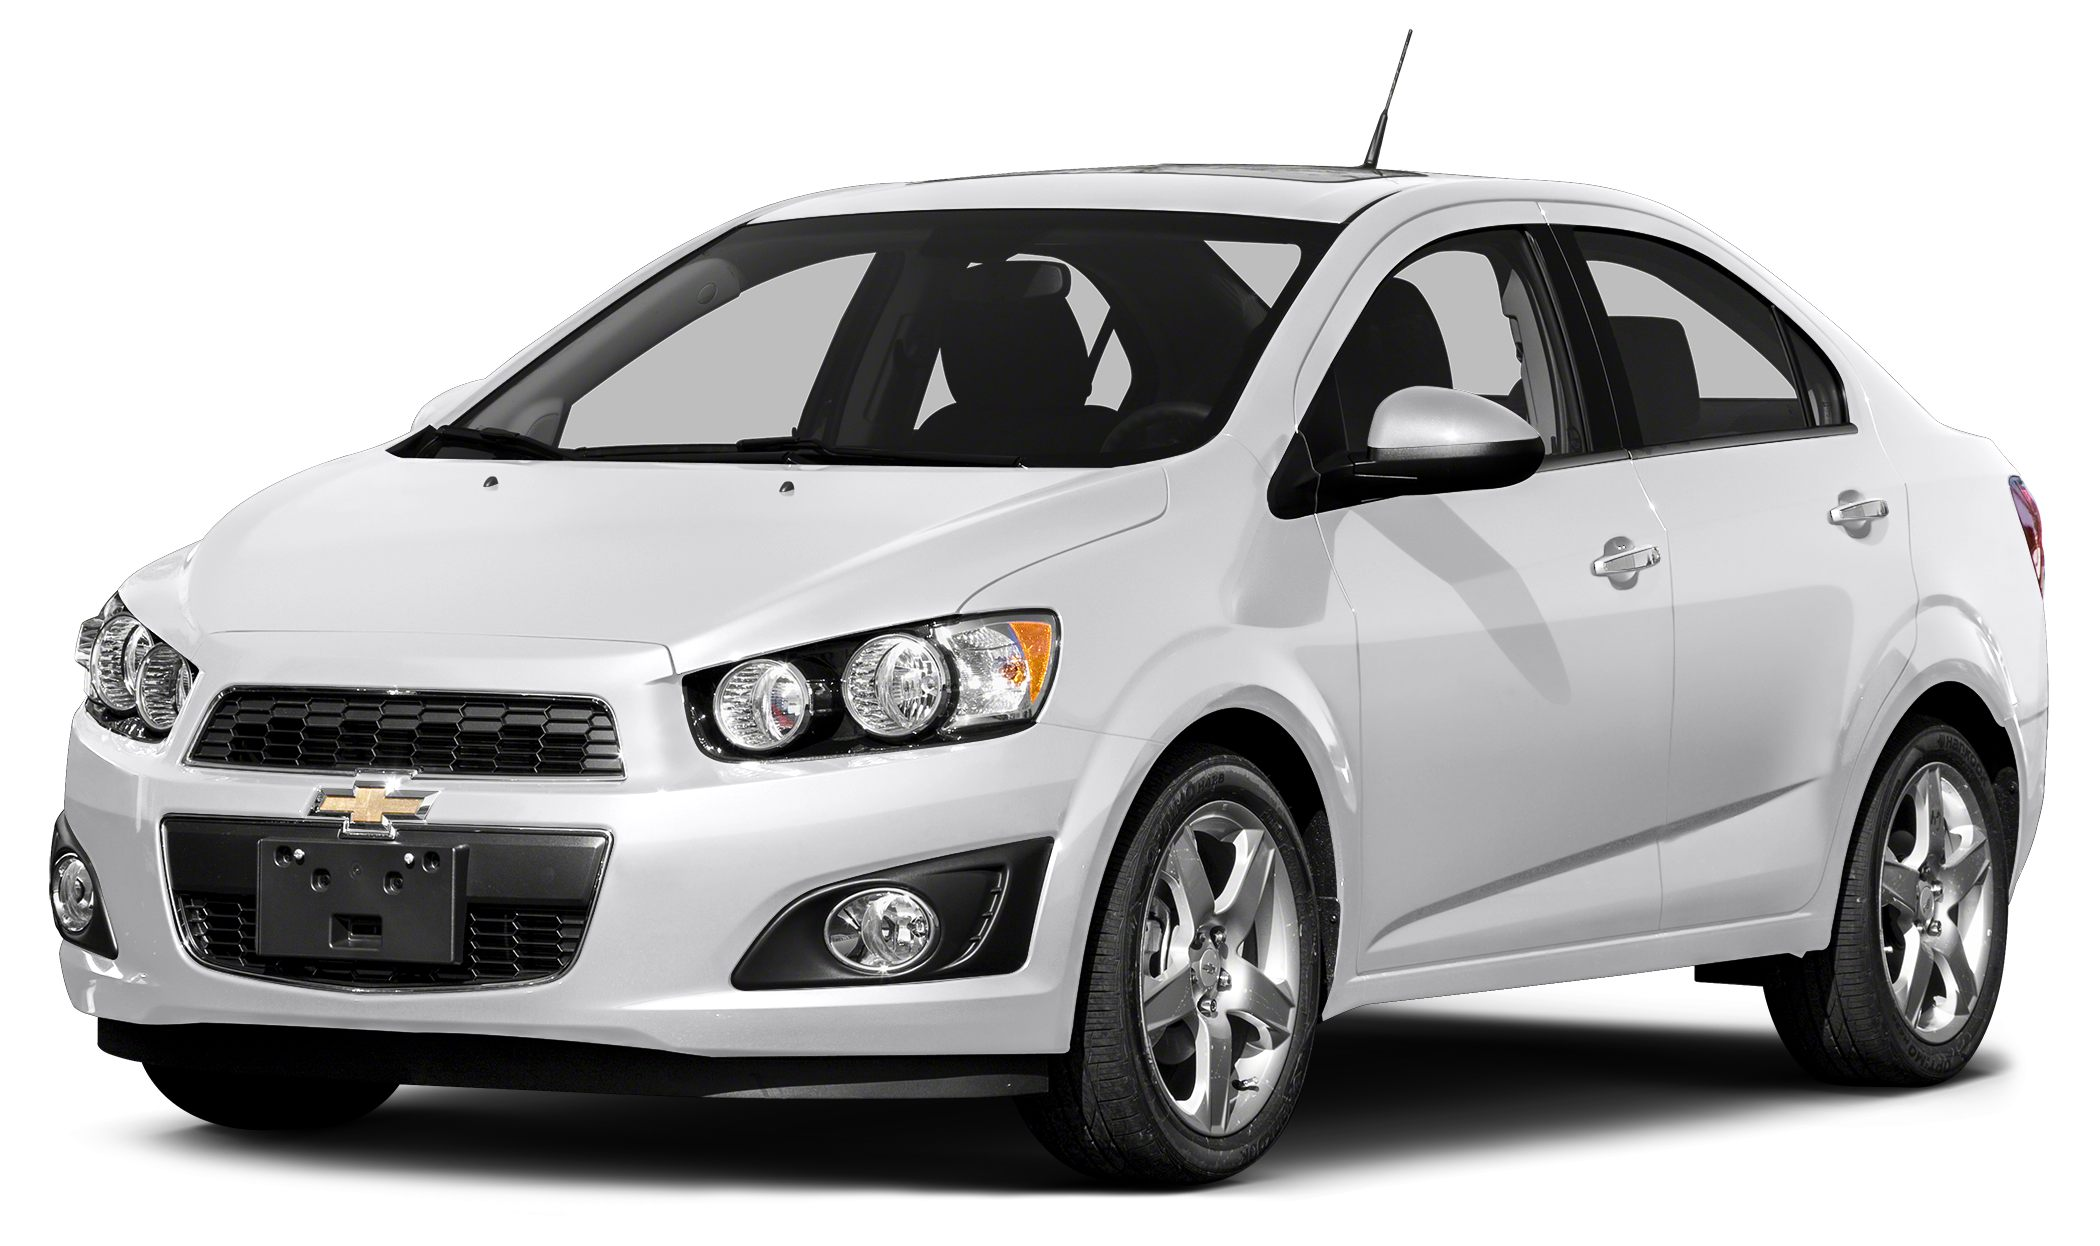 2015 Chevrolet Sonic LT Excellent Condition GREAT MILES 7611 FUEL EFFICIENT 35 MPG Hwy25 MPG C